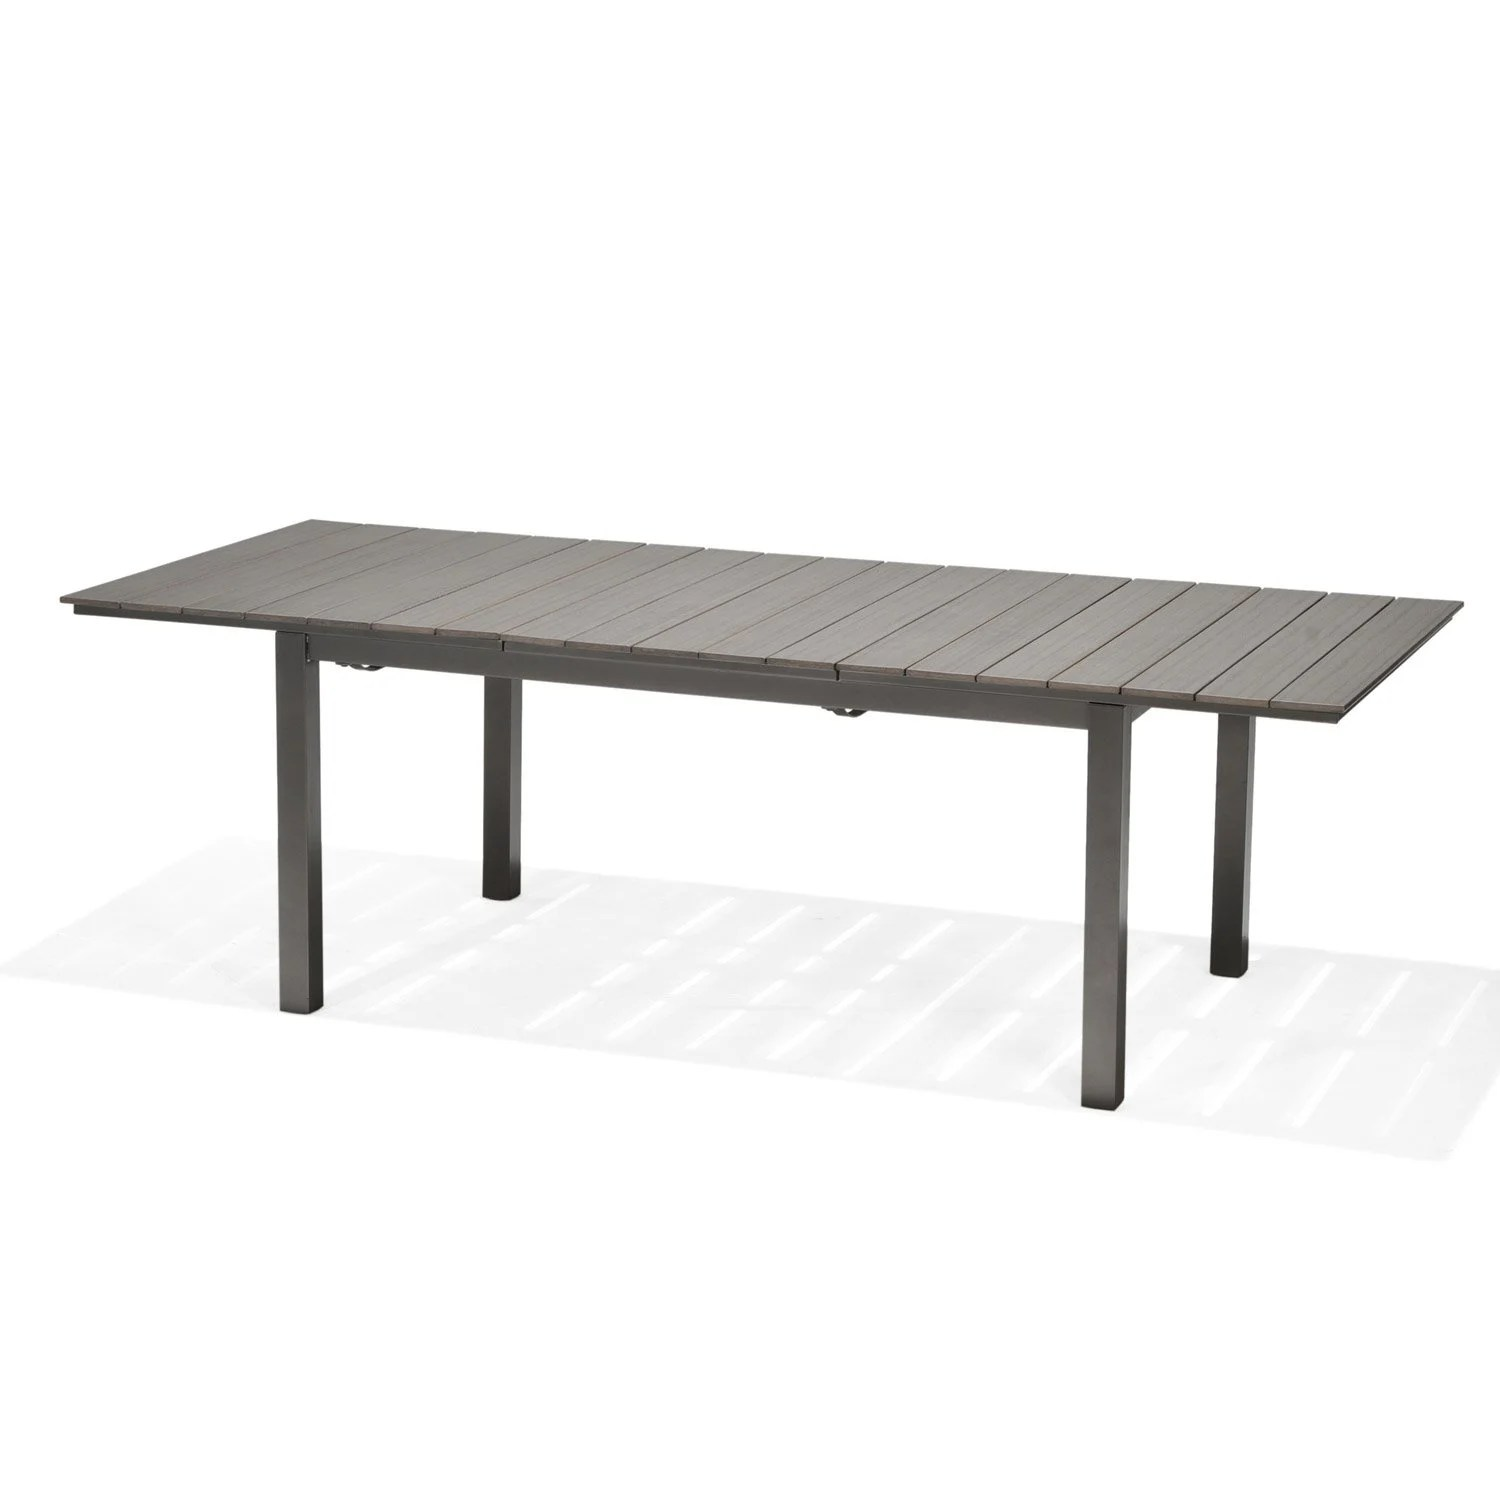 Table Fer Jardin Table De Jardin Salerno Rectangulaire Gris 4 6 Personnes